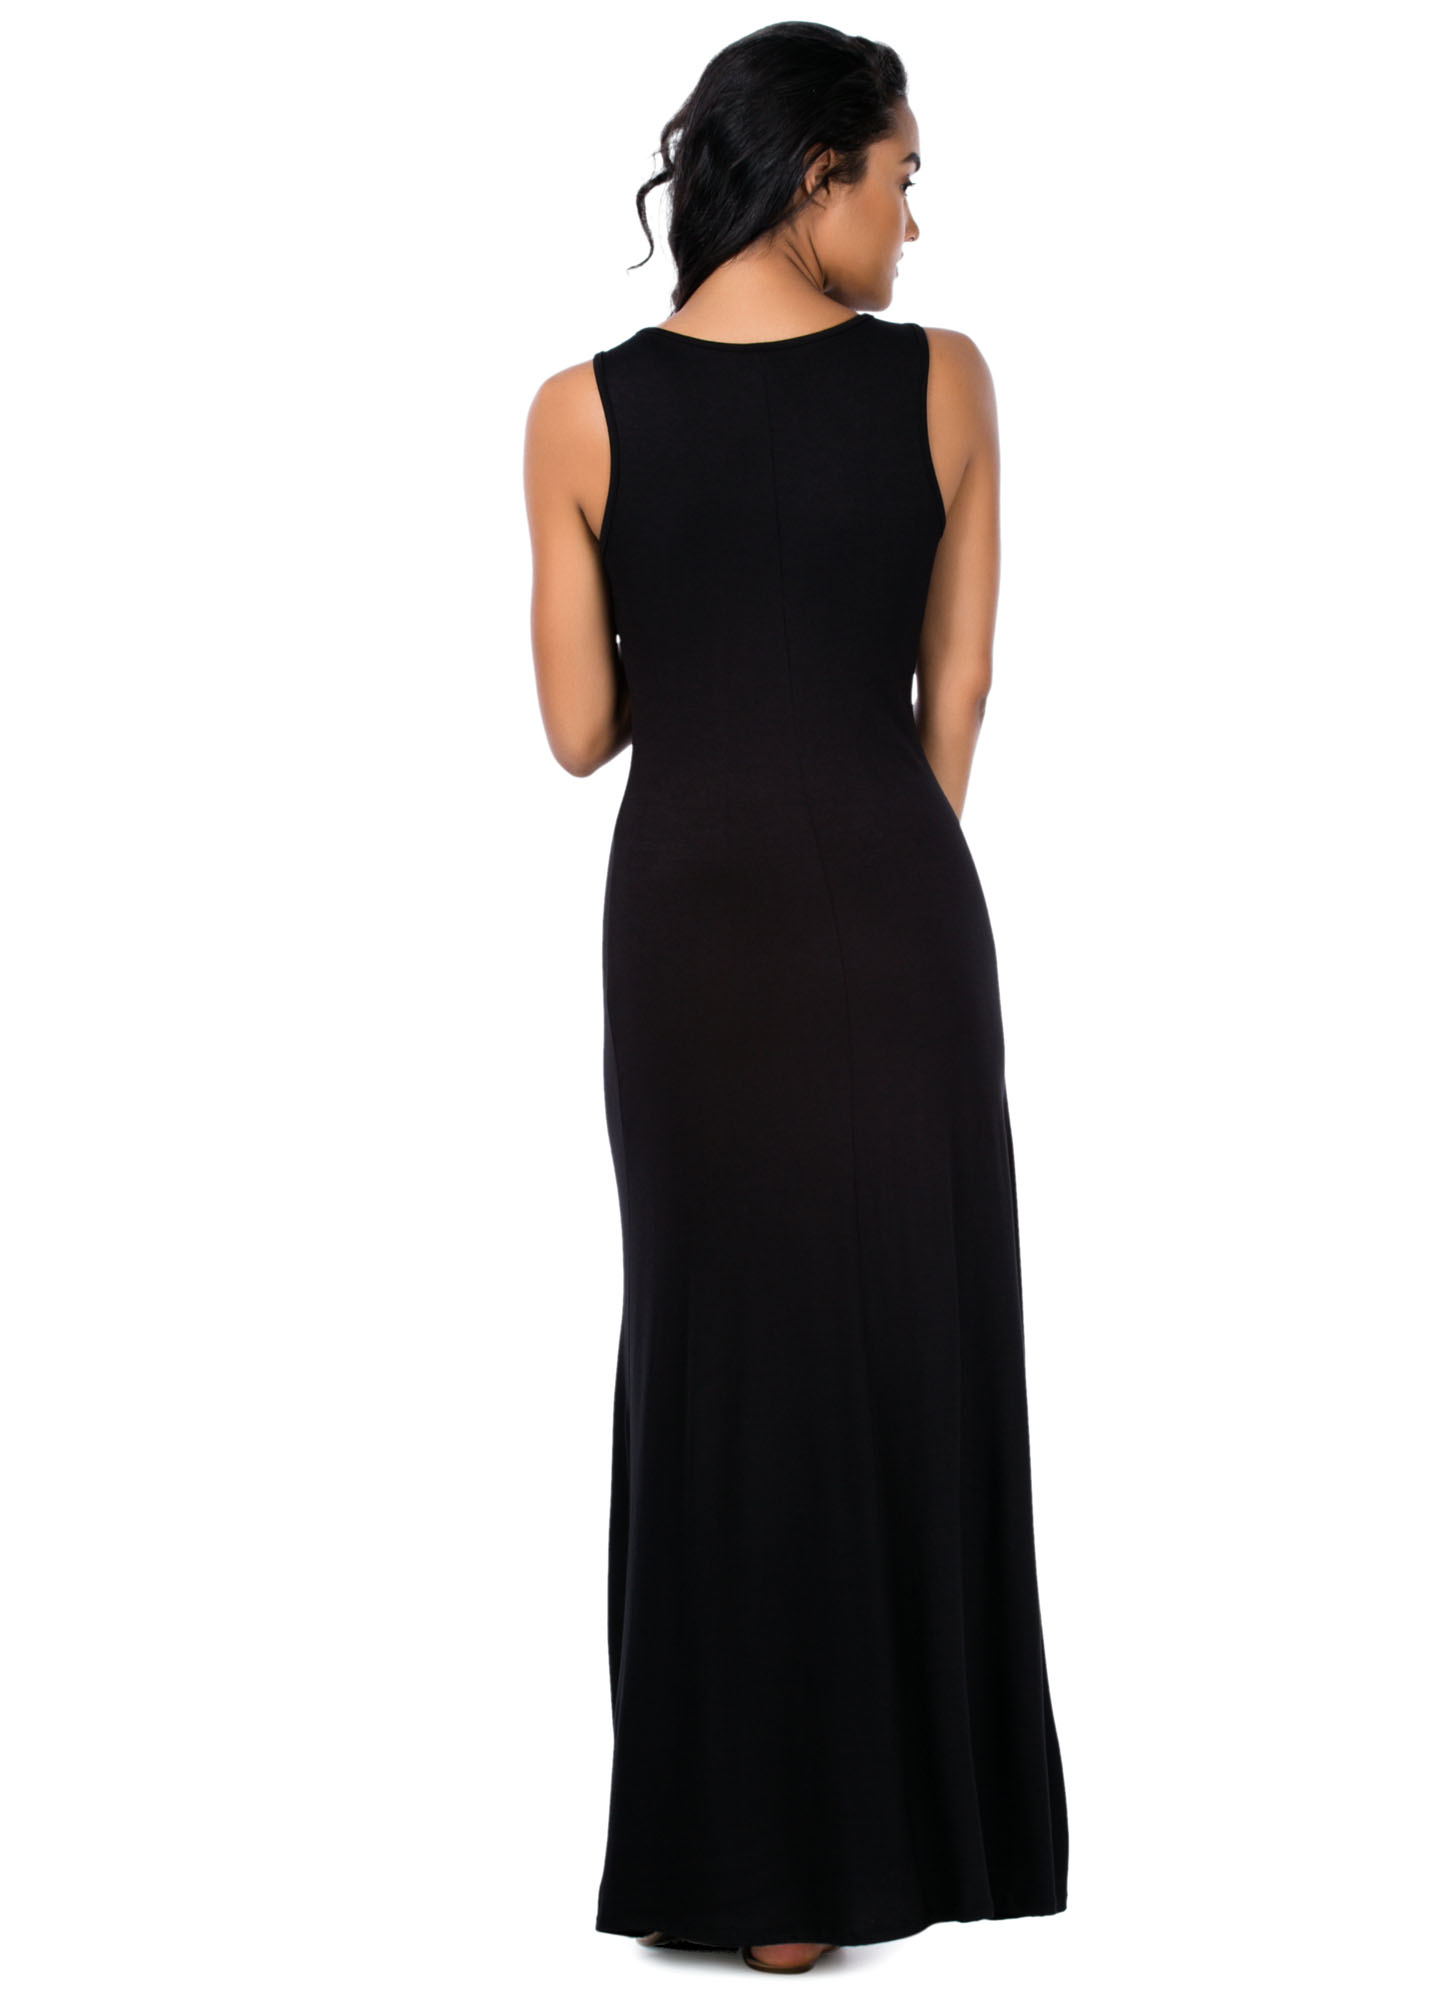 Button It Up Maxi Dress BLACK